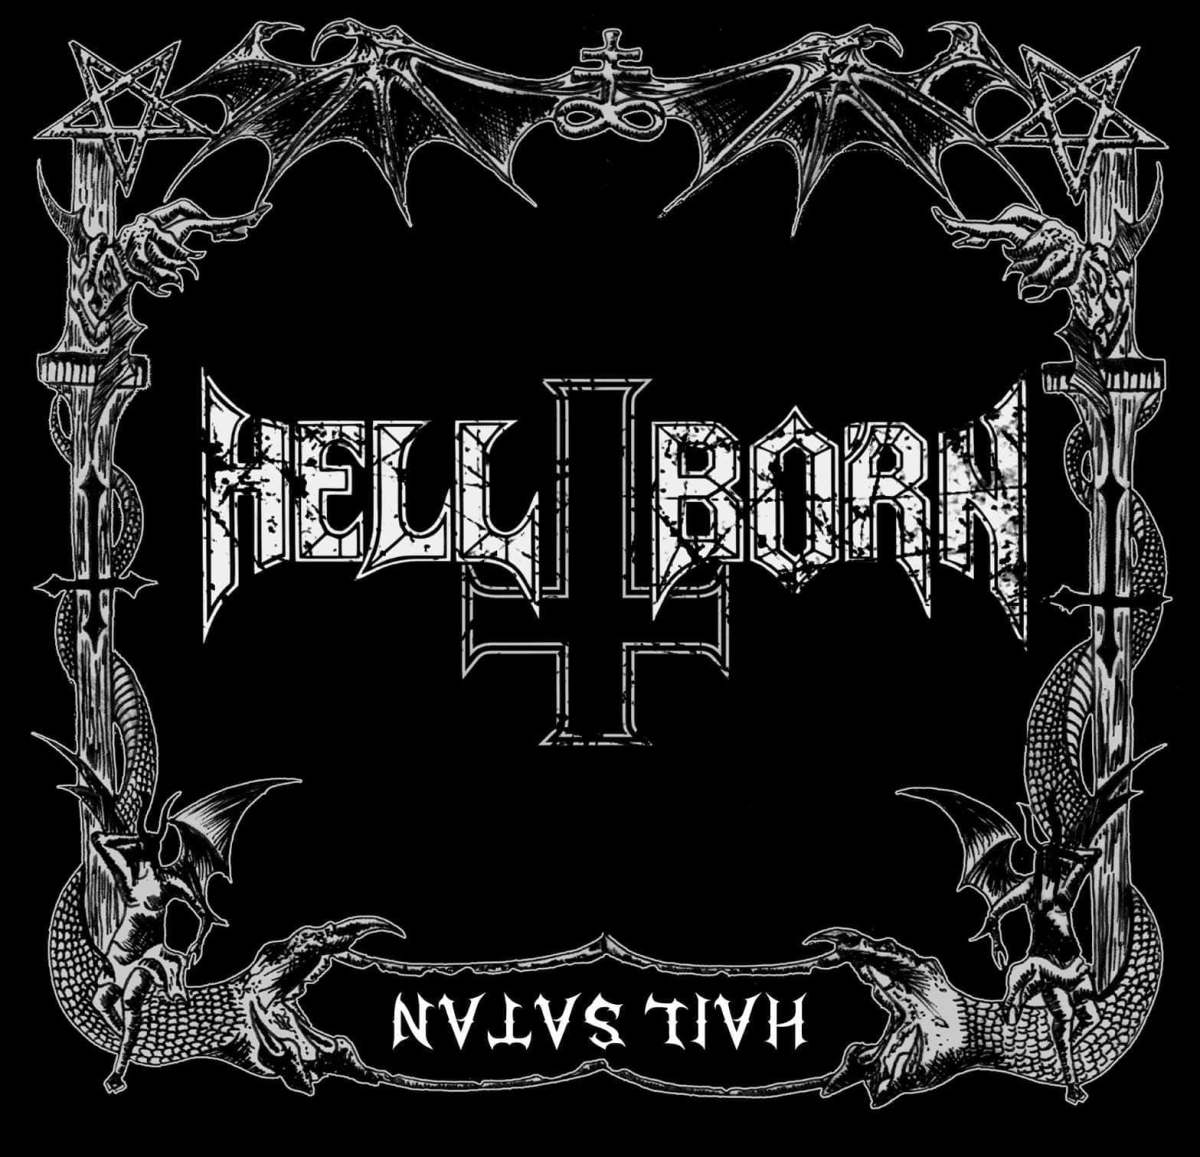 Hell-Born⛧Natas Liah | exposé/review